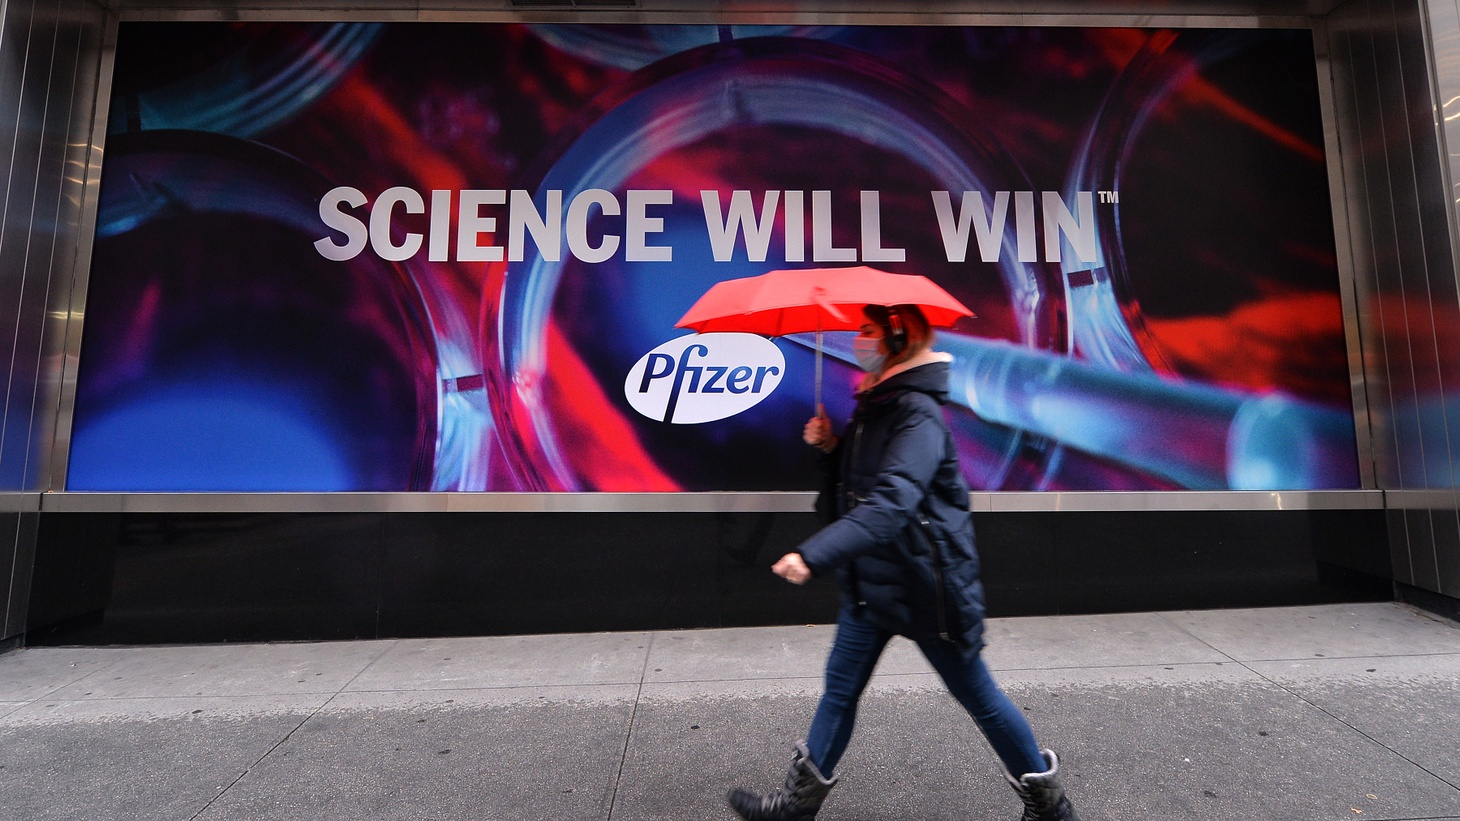 """A woman holding an umbrella walks past the Pfizer world headquarters in New York, NY, December 4, 2020. The artwork on the wall says """"Science will win."""" On December 11, 2020, the U.S. Food and Drug Administration authorized Pfizer's COVID-19 vaccine for emergency use."""